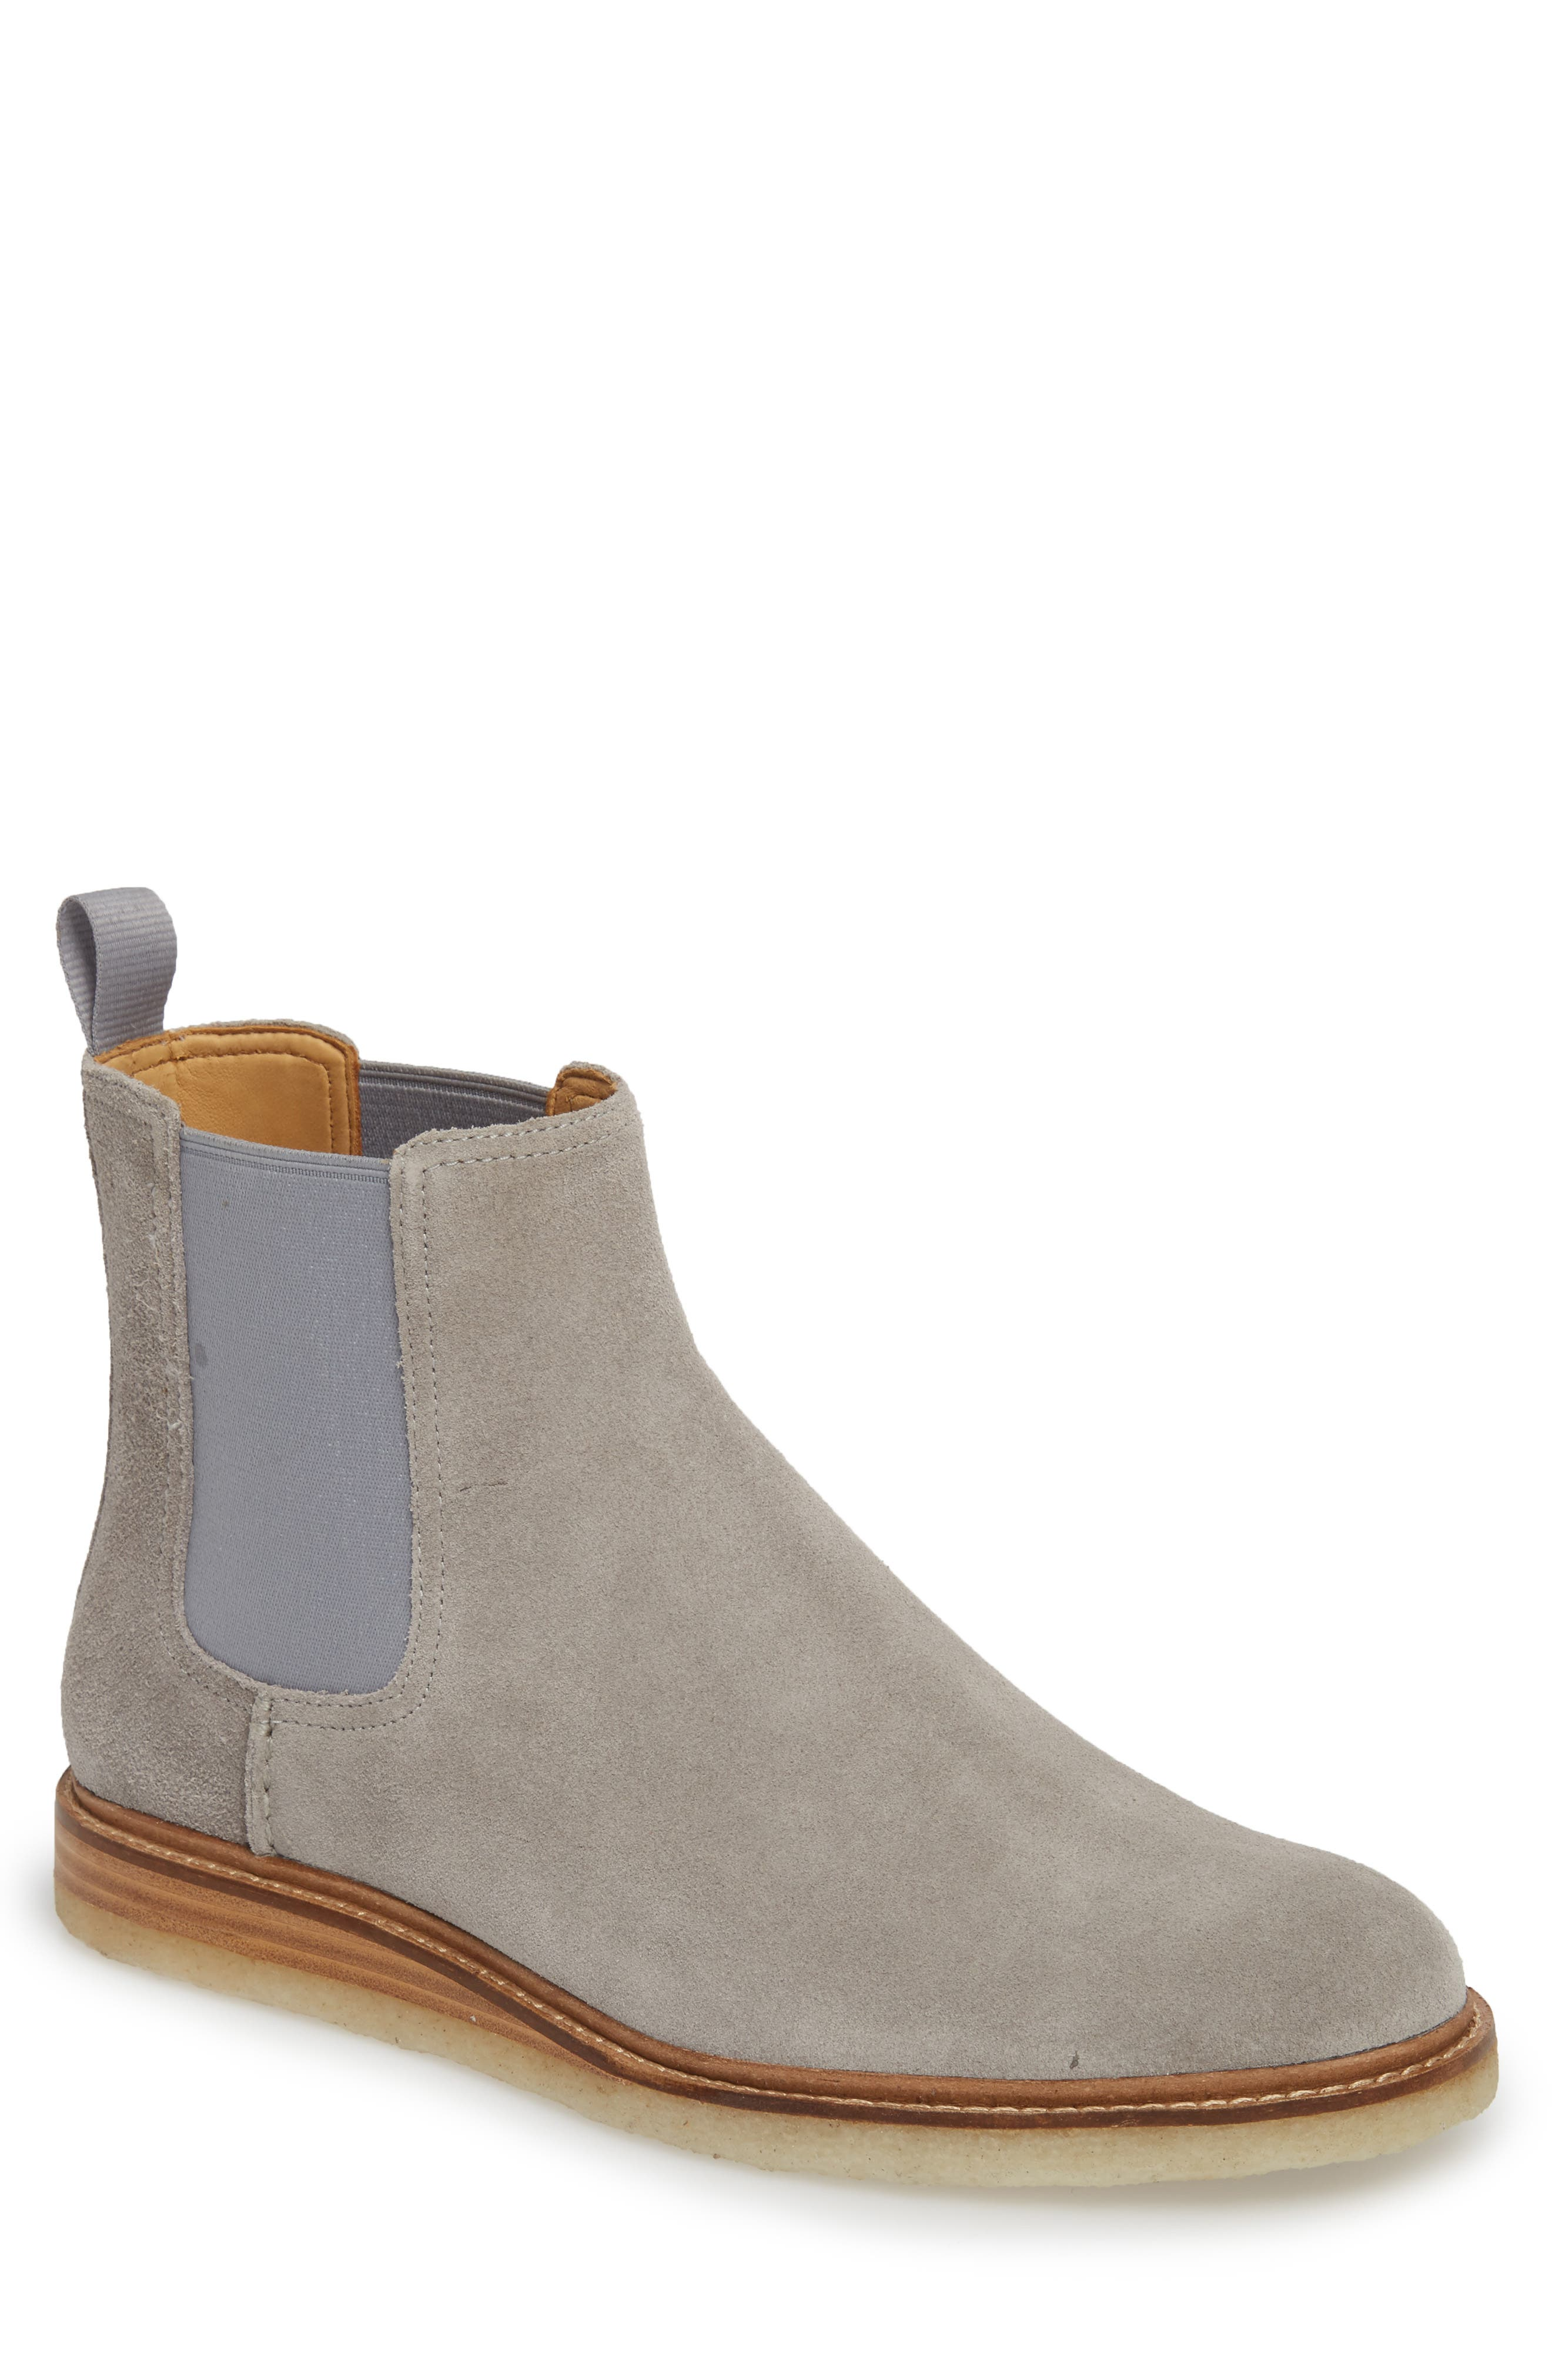 Gold Cup Crepe Chelsea Boot,                         Main,                         color, 020